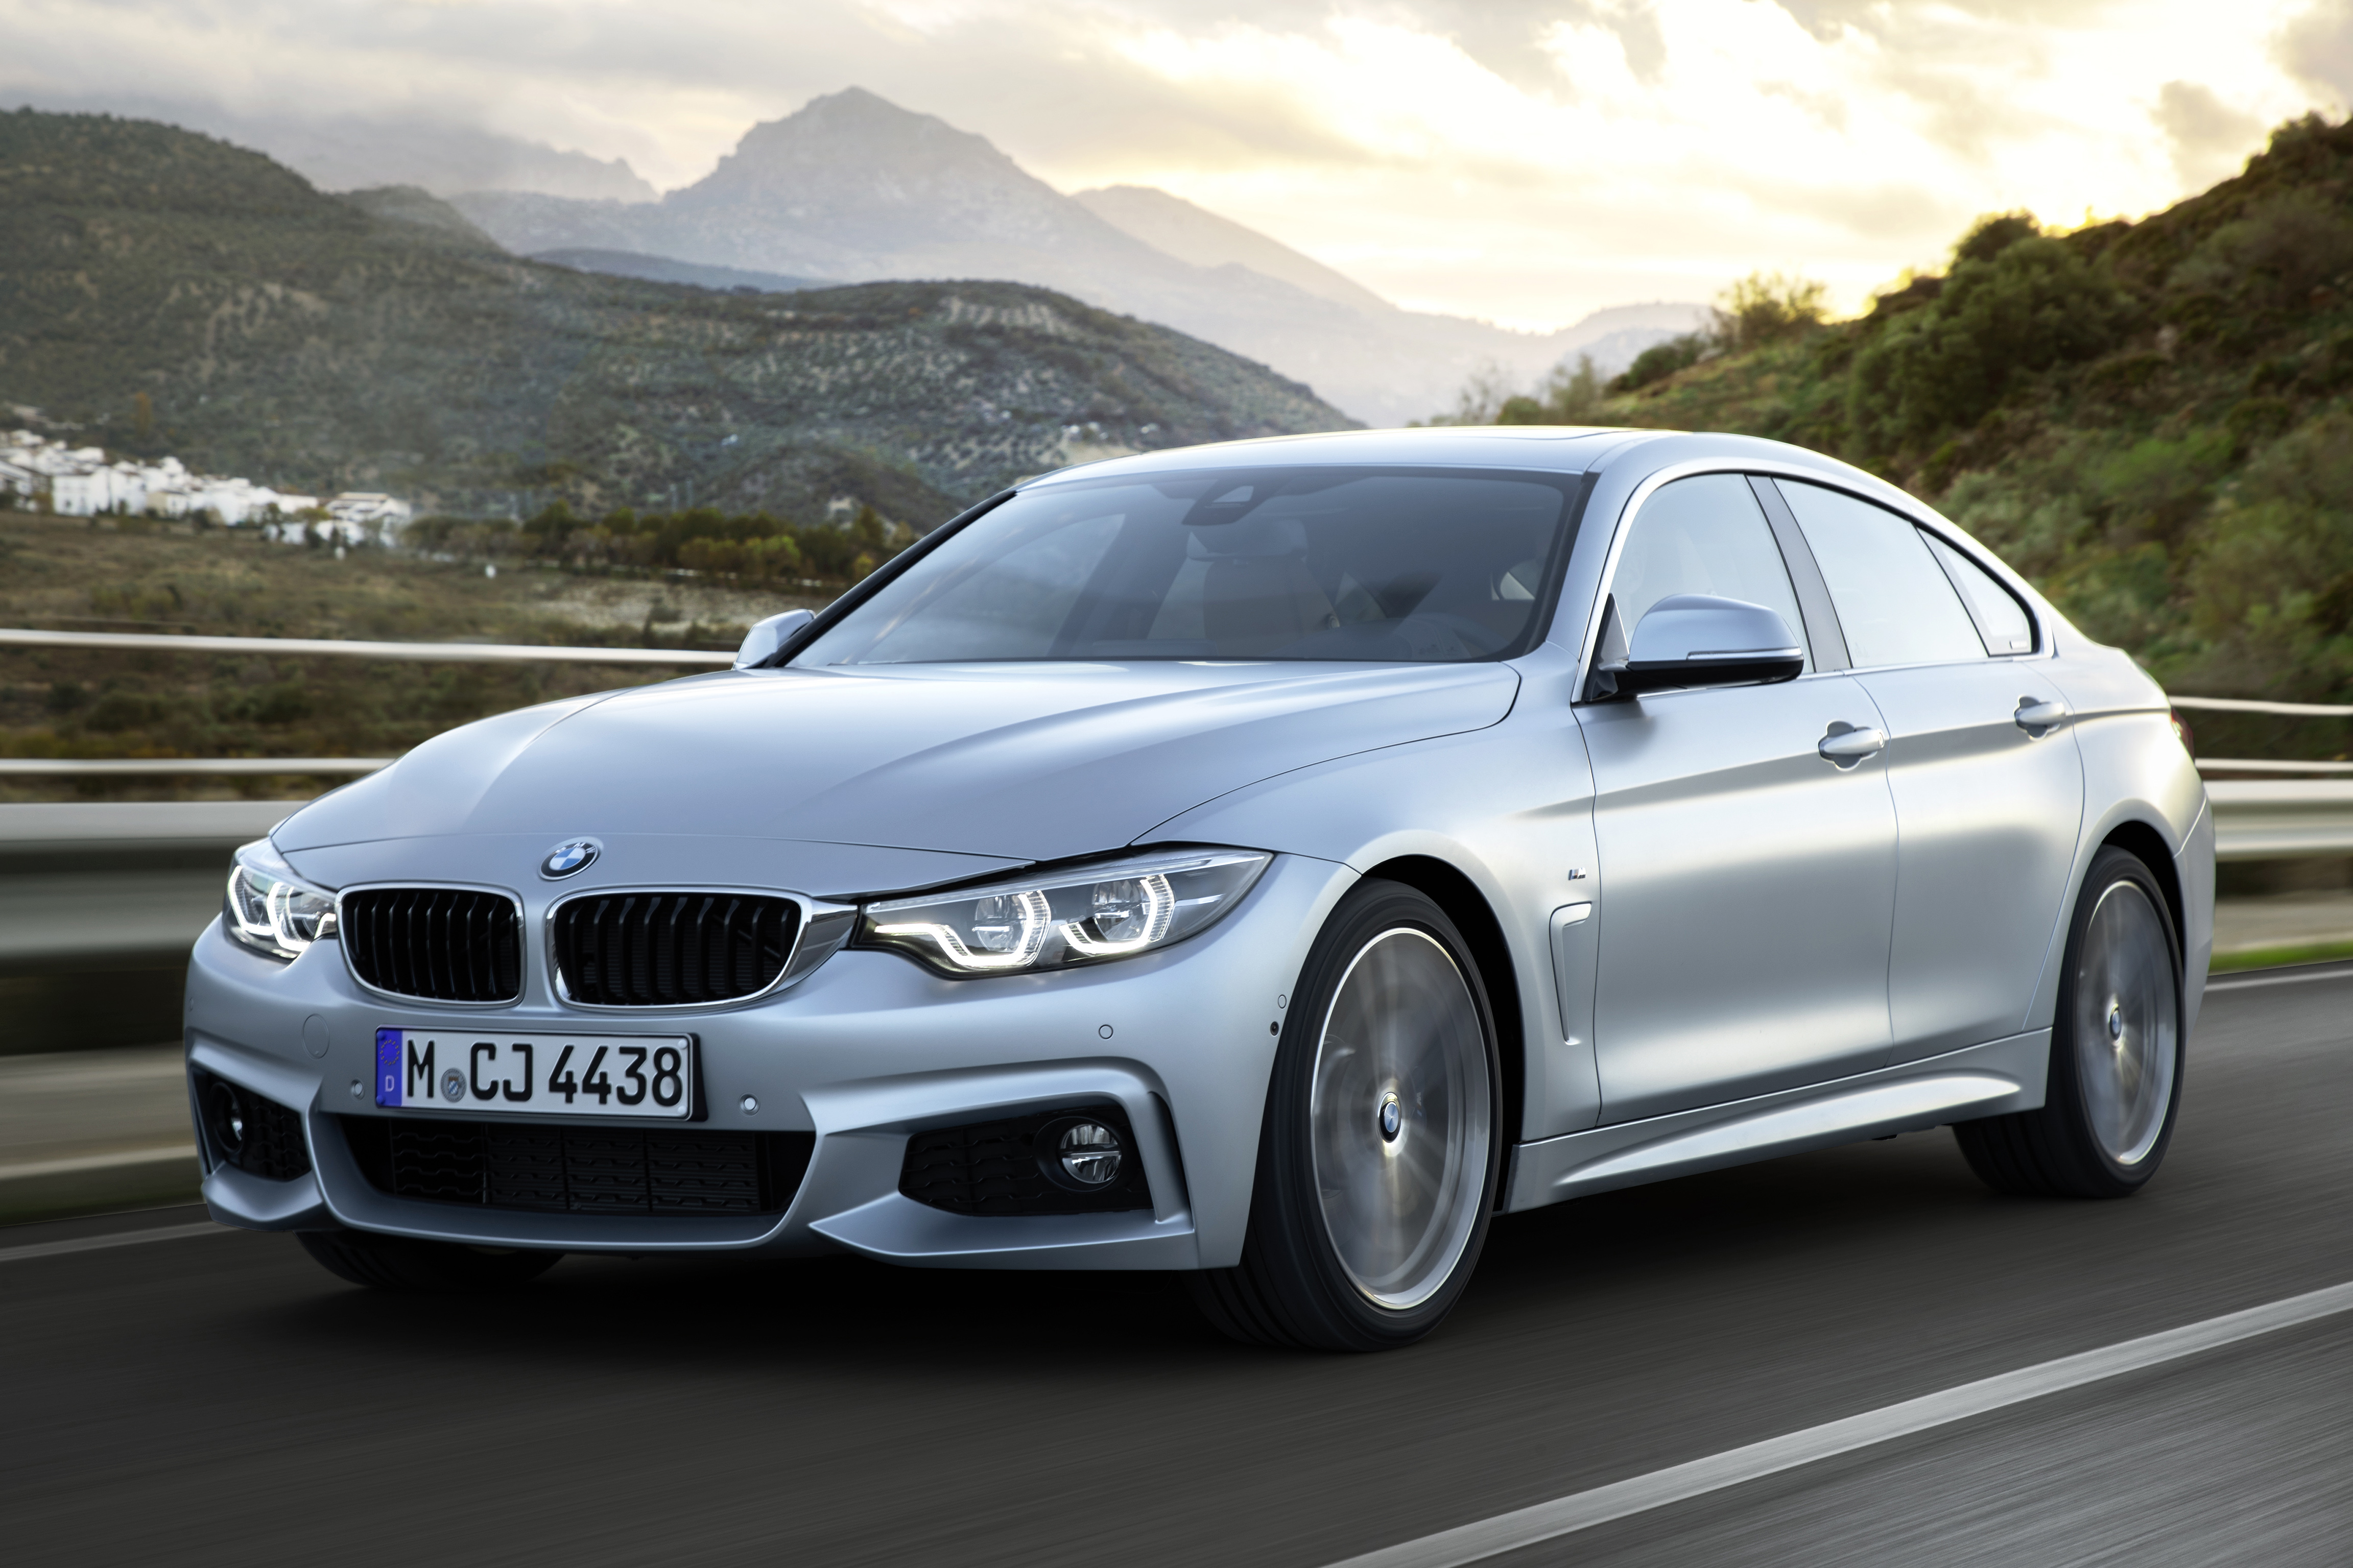 BMW's 4-Series Gran Coupe blends style and performance.